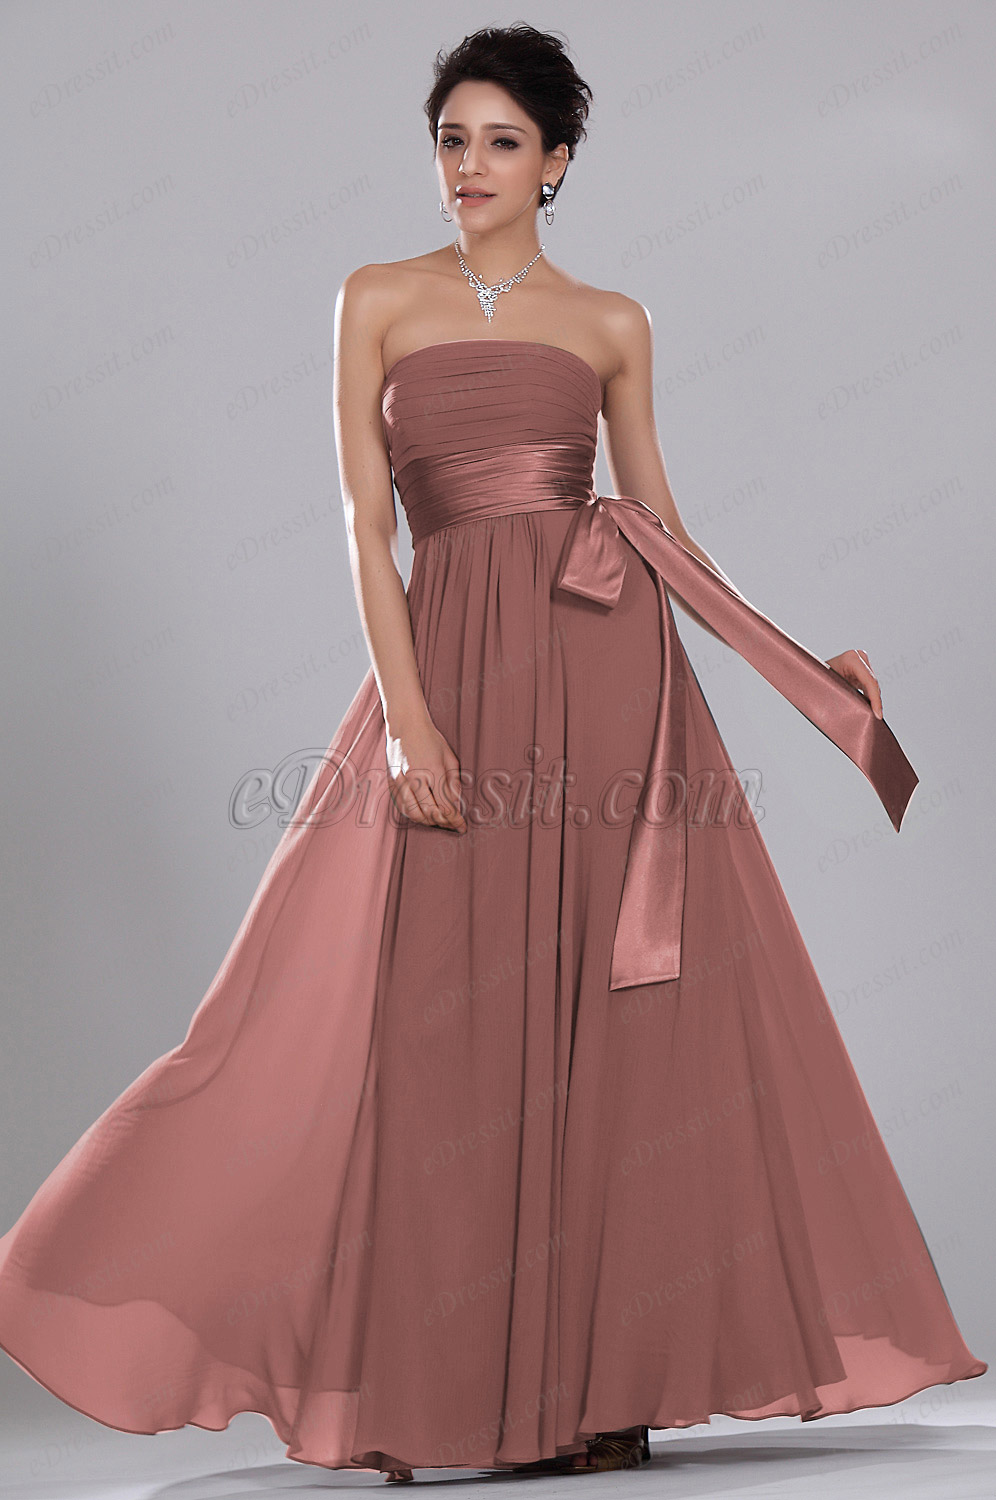 eDressit Simple Elegant Strapless Evening Dress ONLY ONE PIECE SIZE UK8 (00119246)